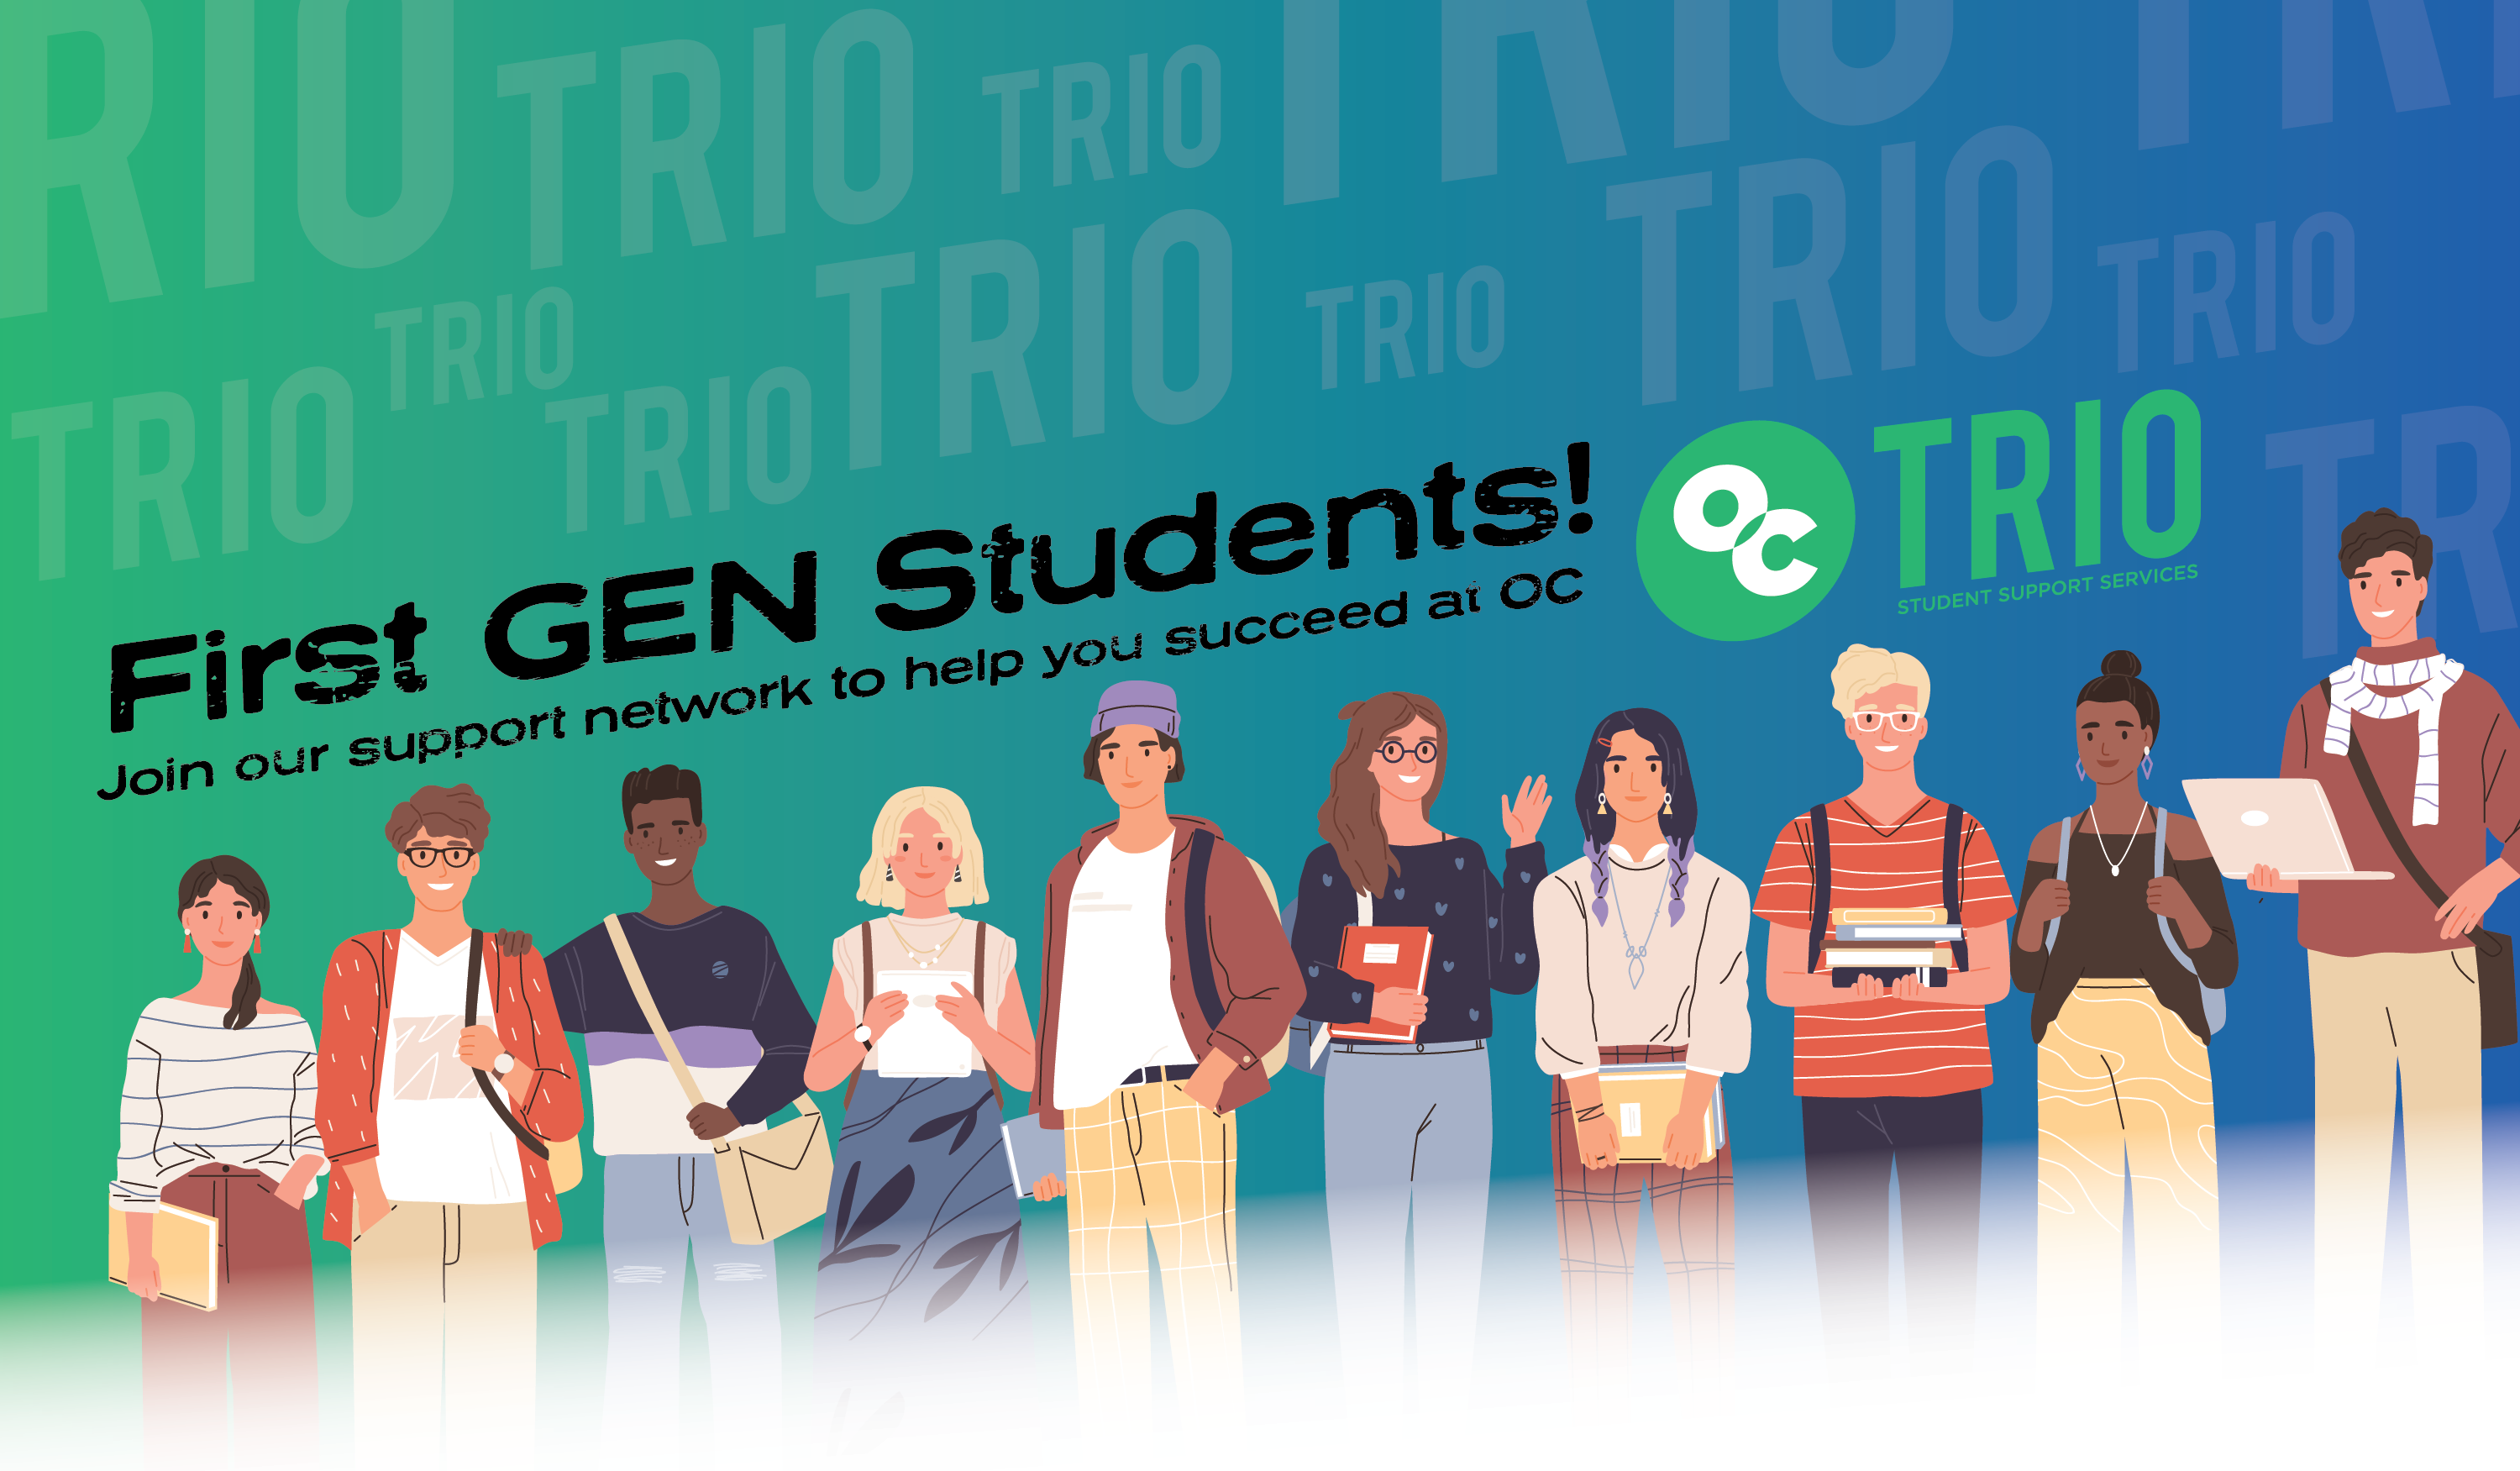 First gen students join our support network to help you succeed